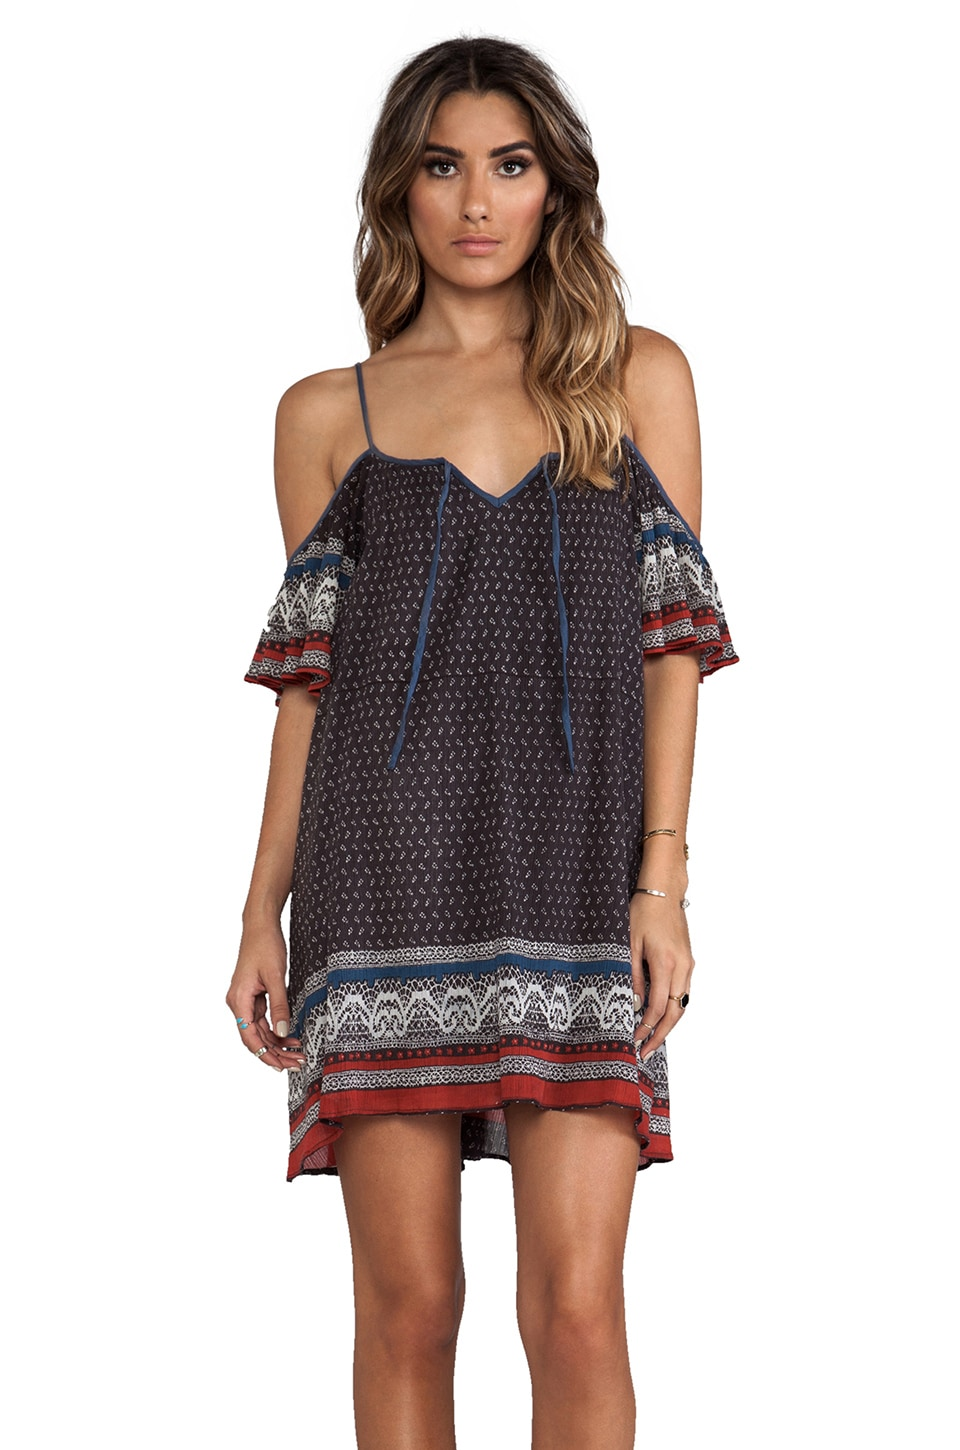 Free People Printed Cold Shoulder Dress in Black Combo